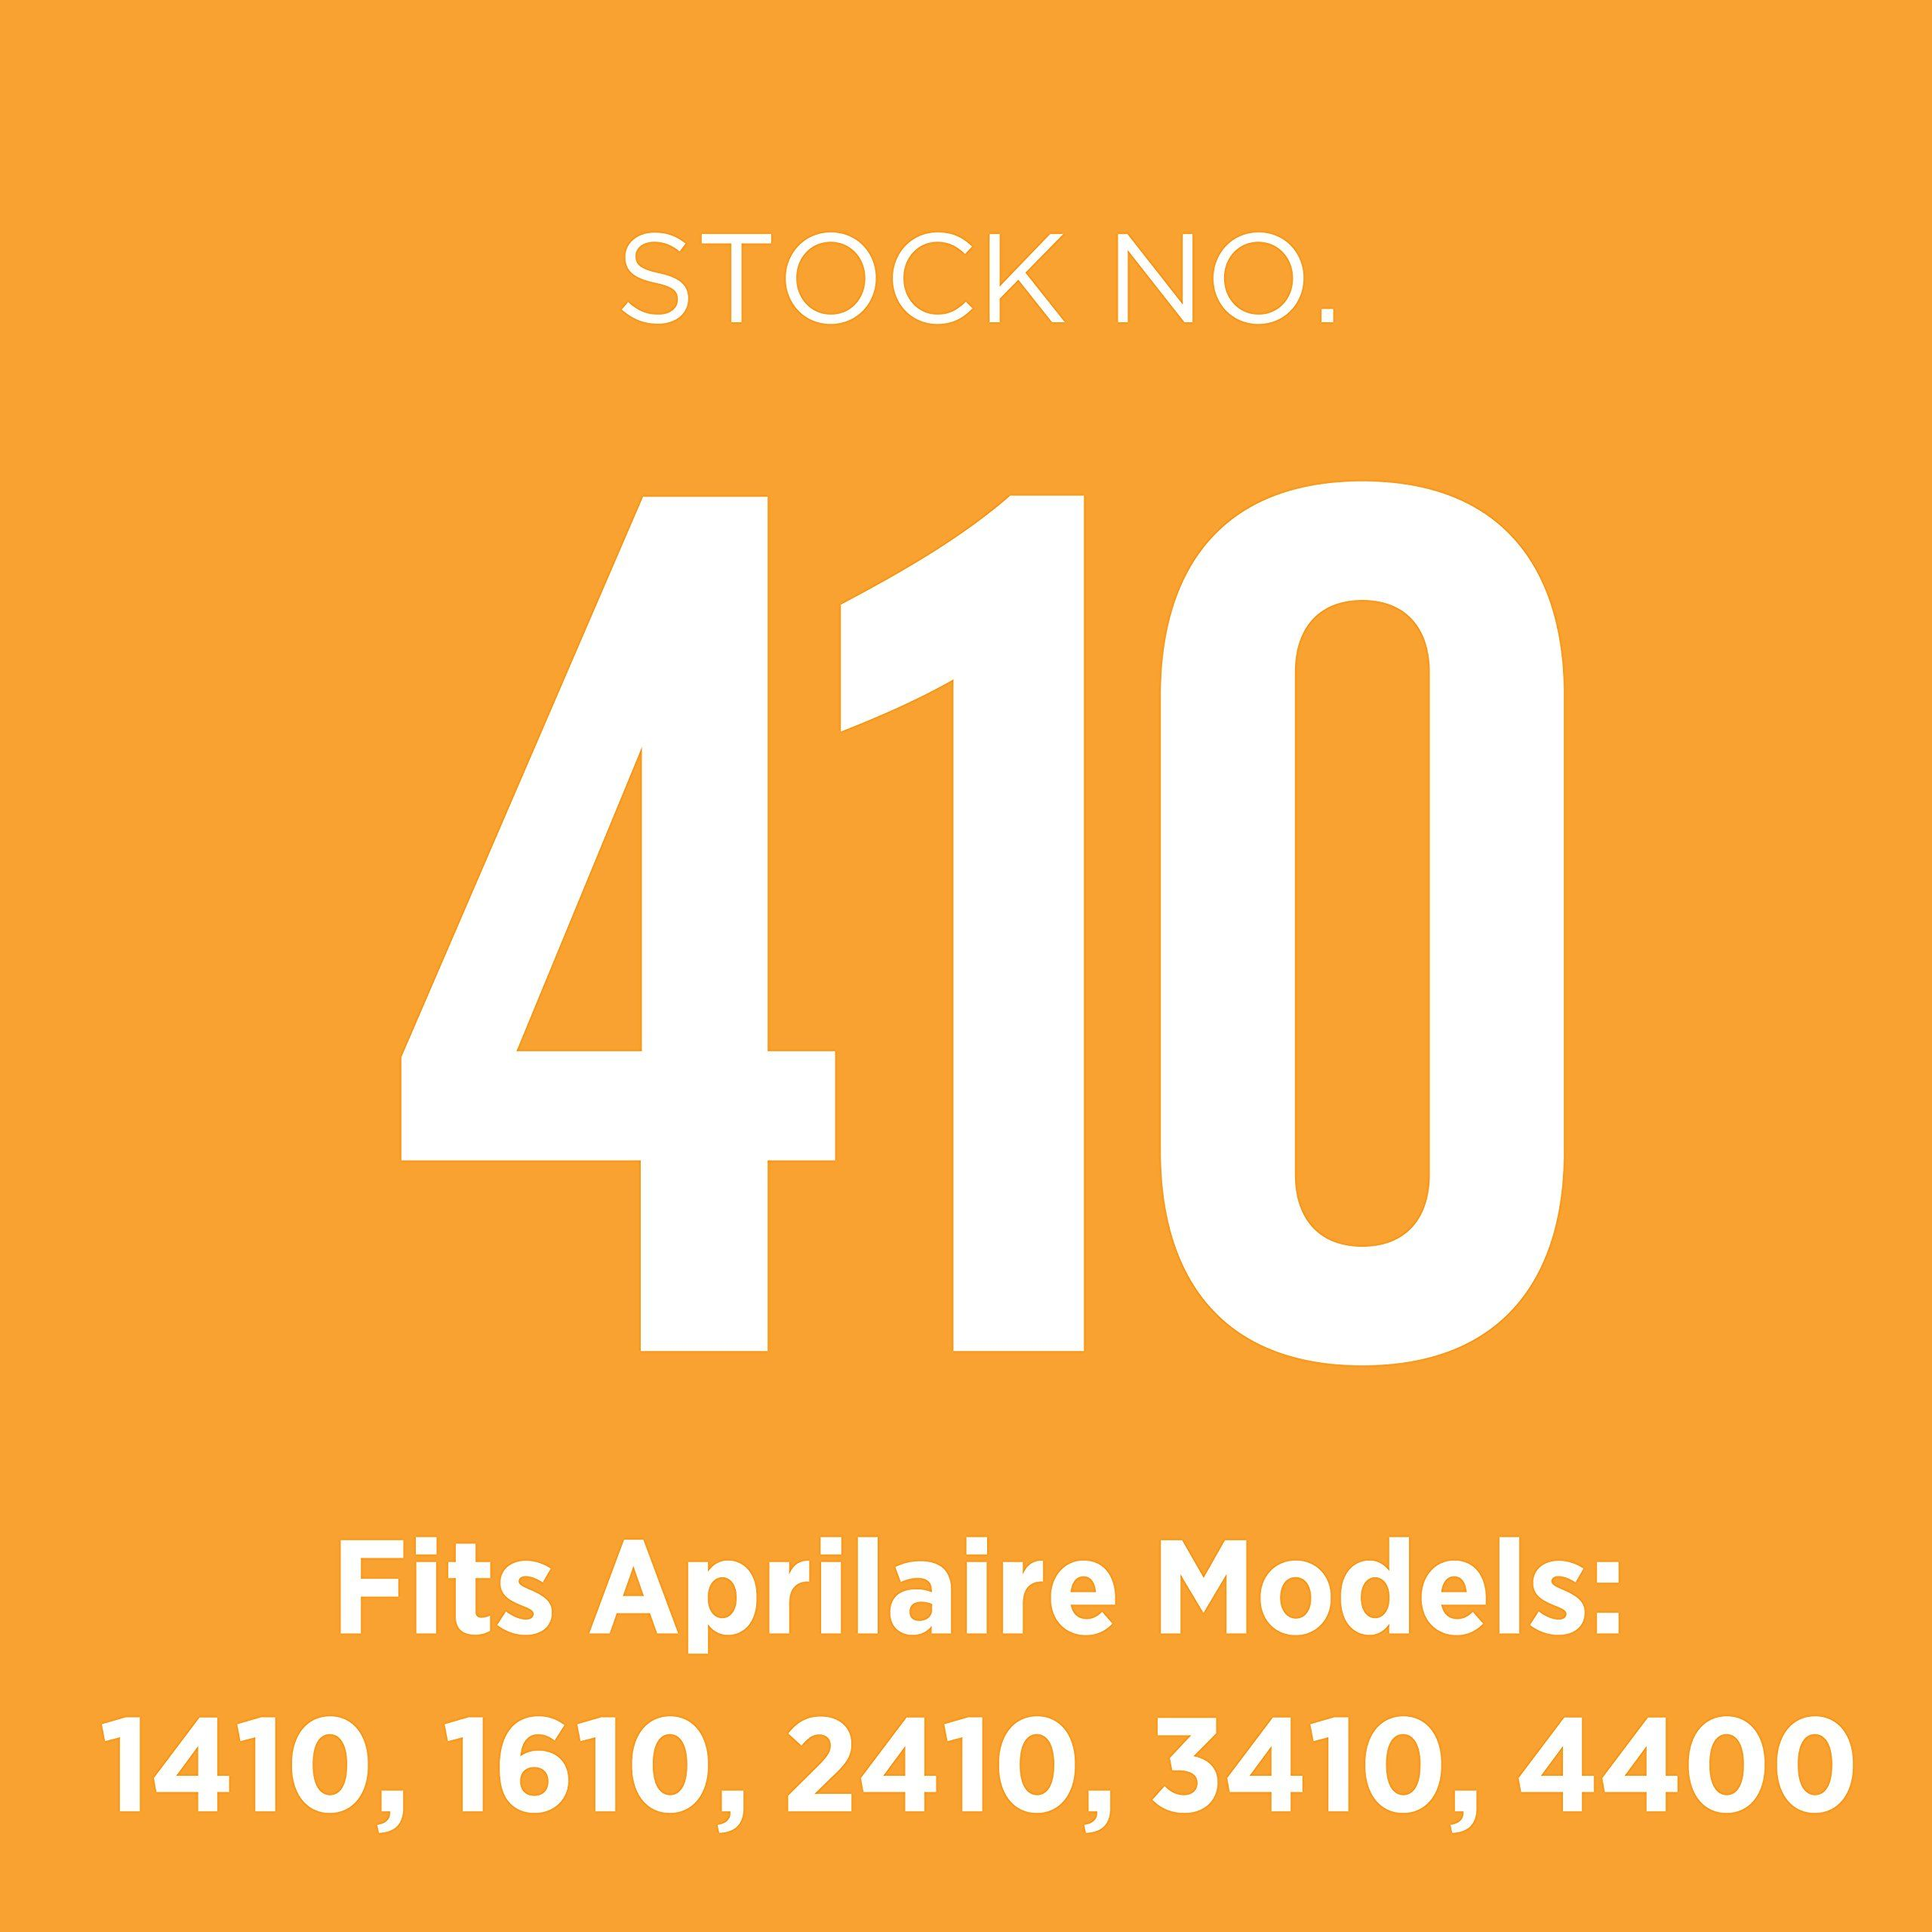 Aprilaire 410 Air Filter for Aprilaire Whole Home Air